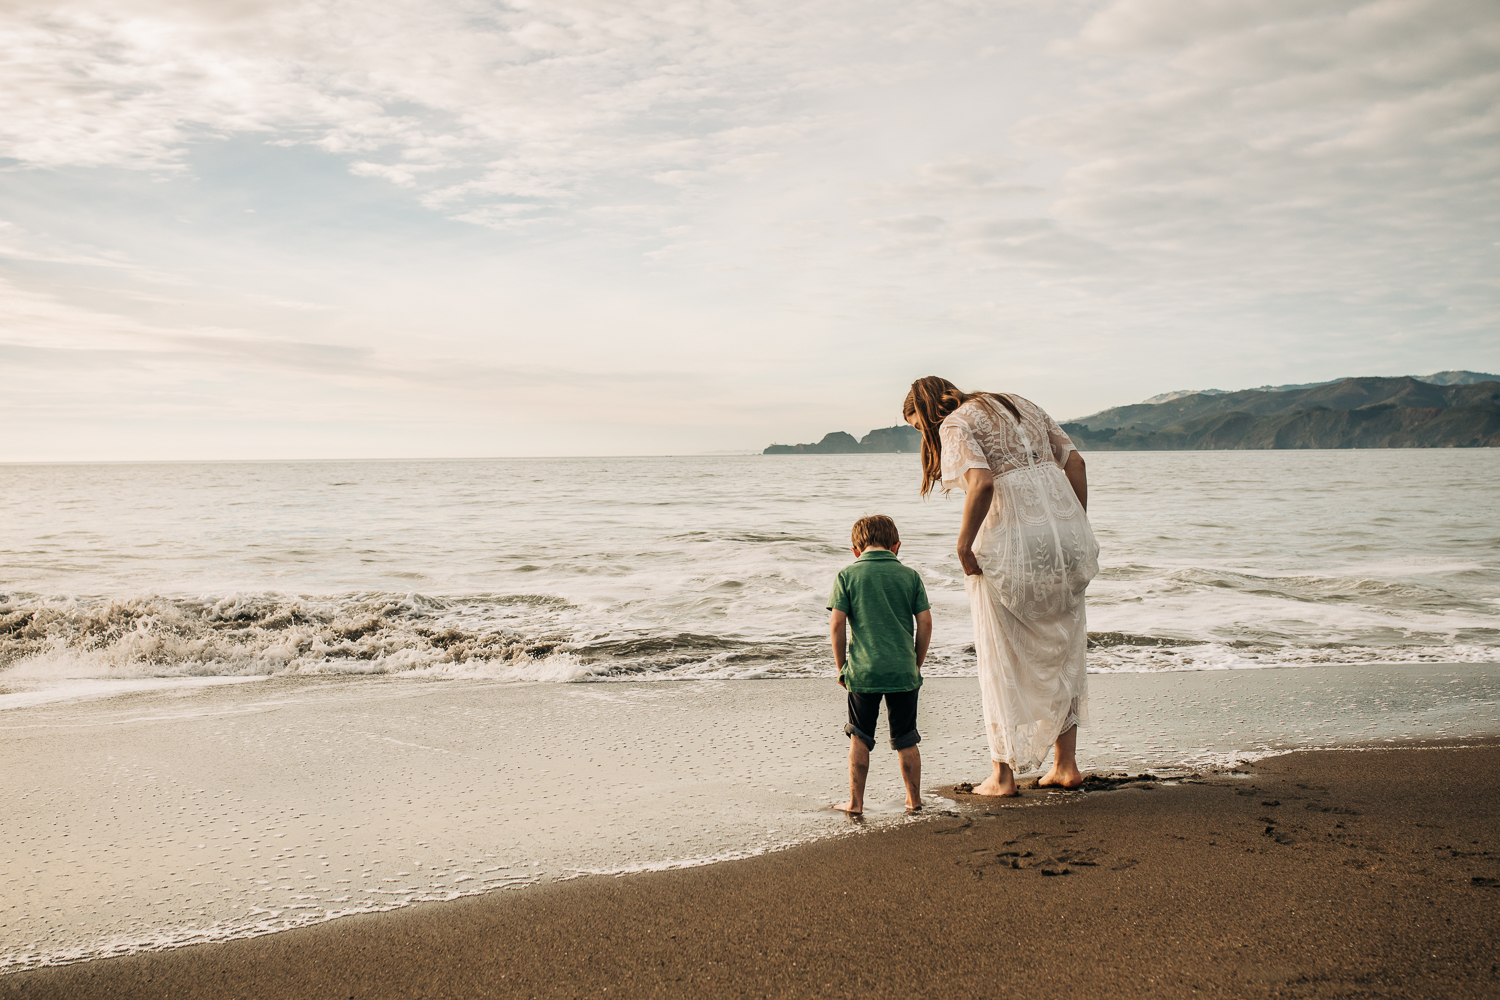 pregnant mother wading in the ocean at the beach with her toddler son | Bay Area Maternity Photographer